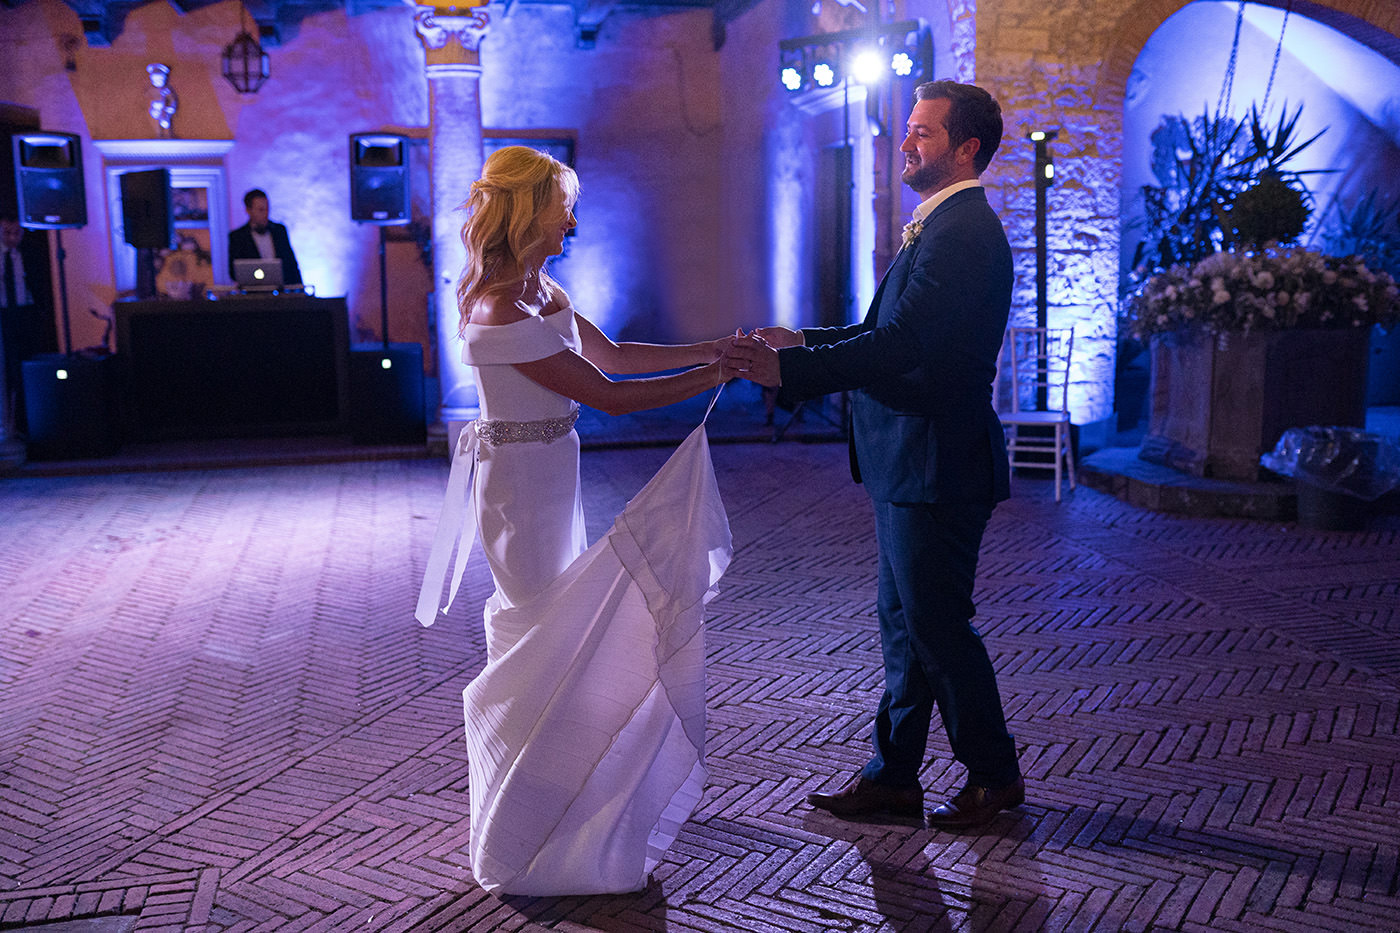 Tuscan Wedding Photo Shoots At Palagio Castle: first dance at Castello Il Palagio